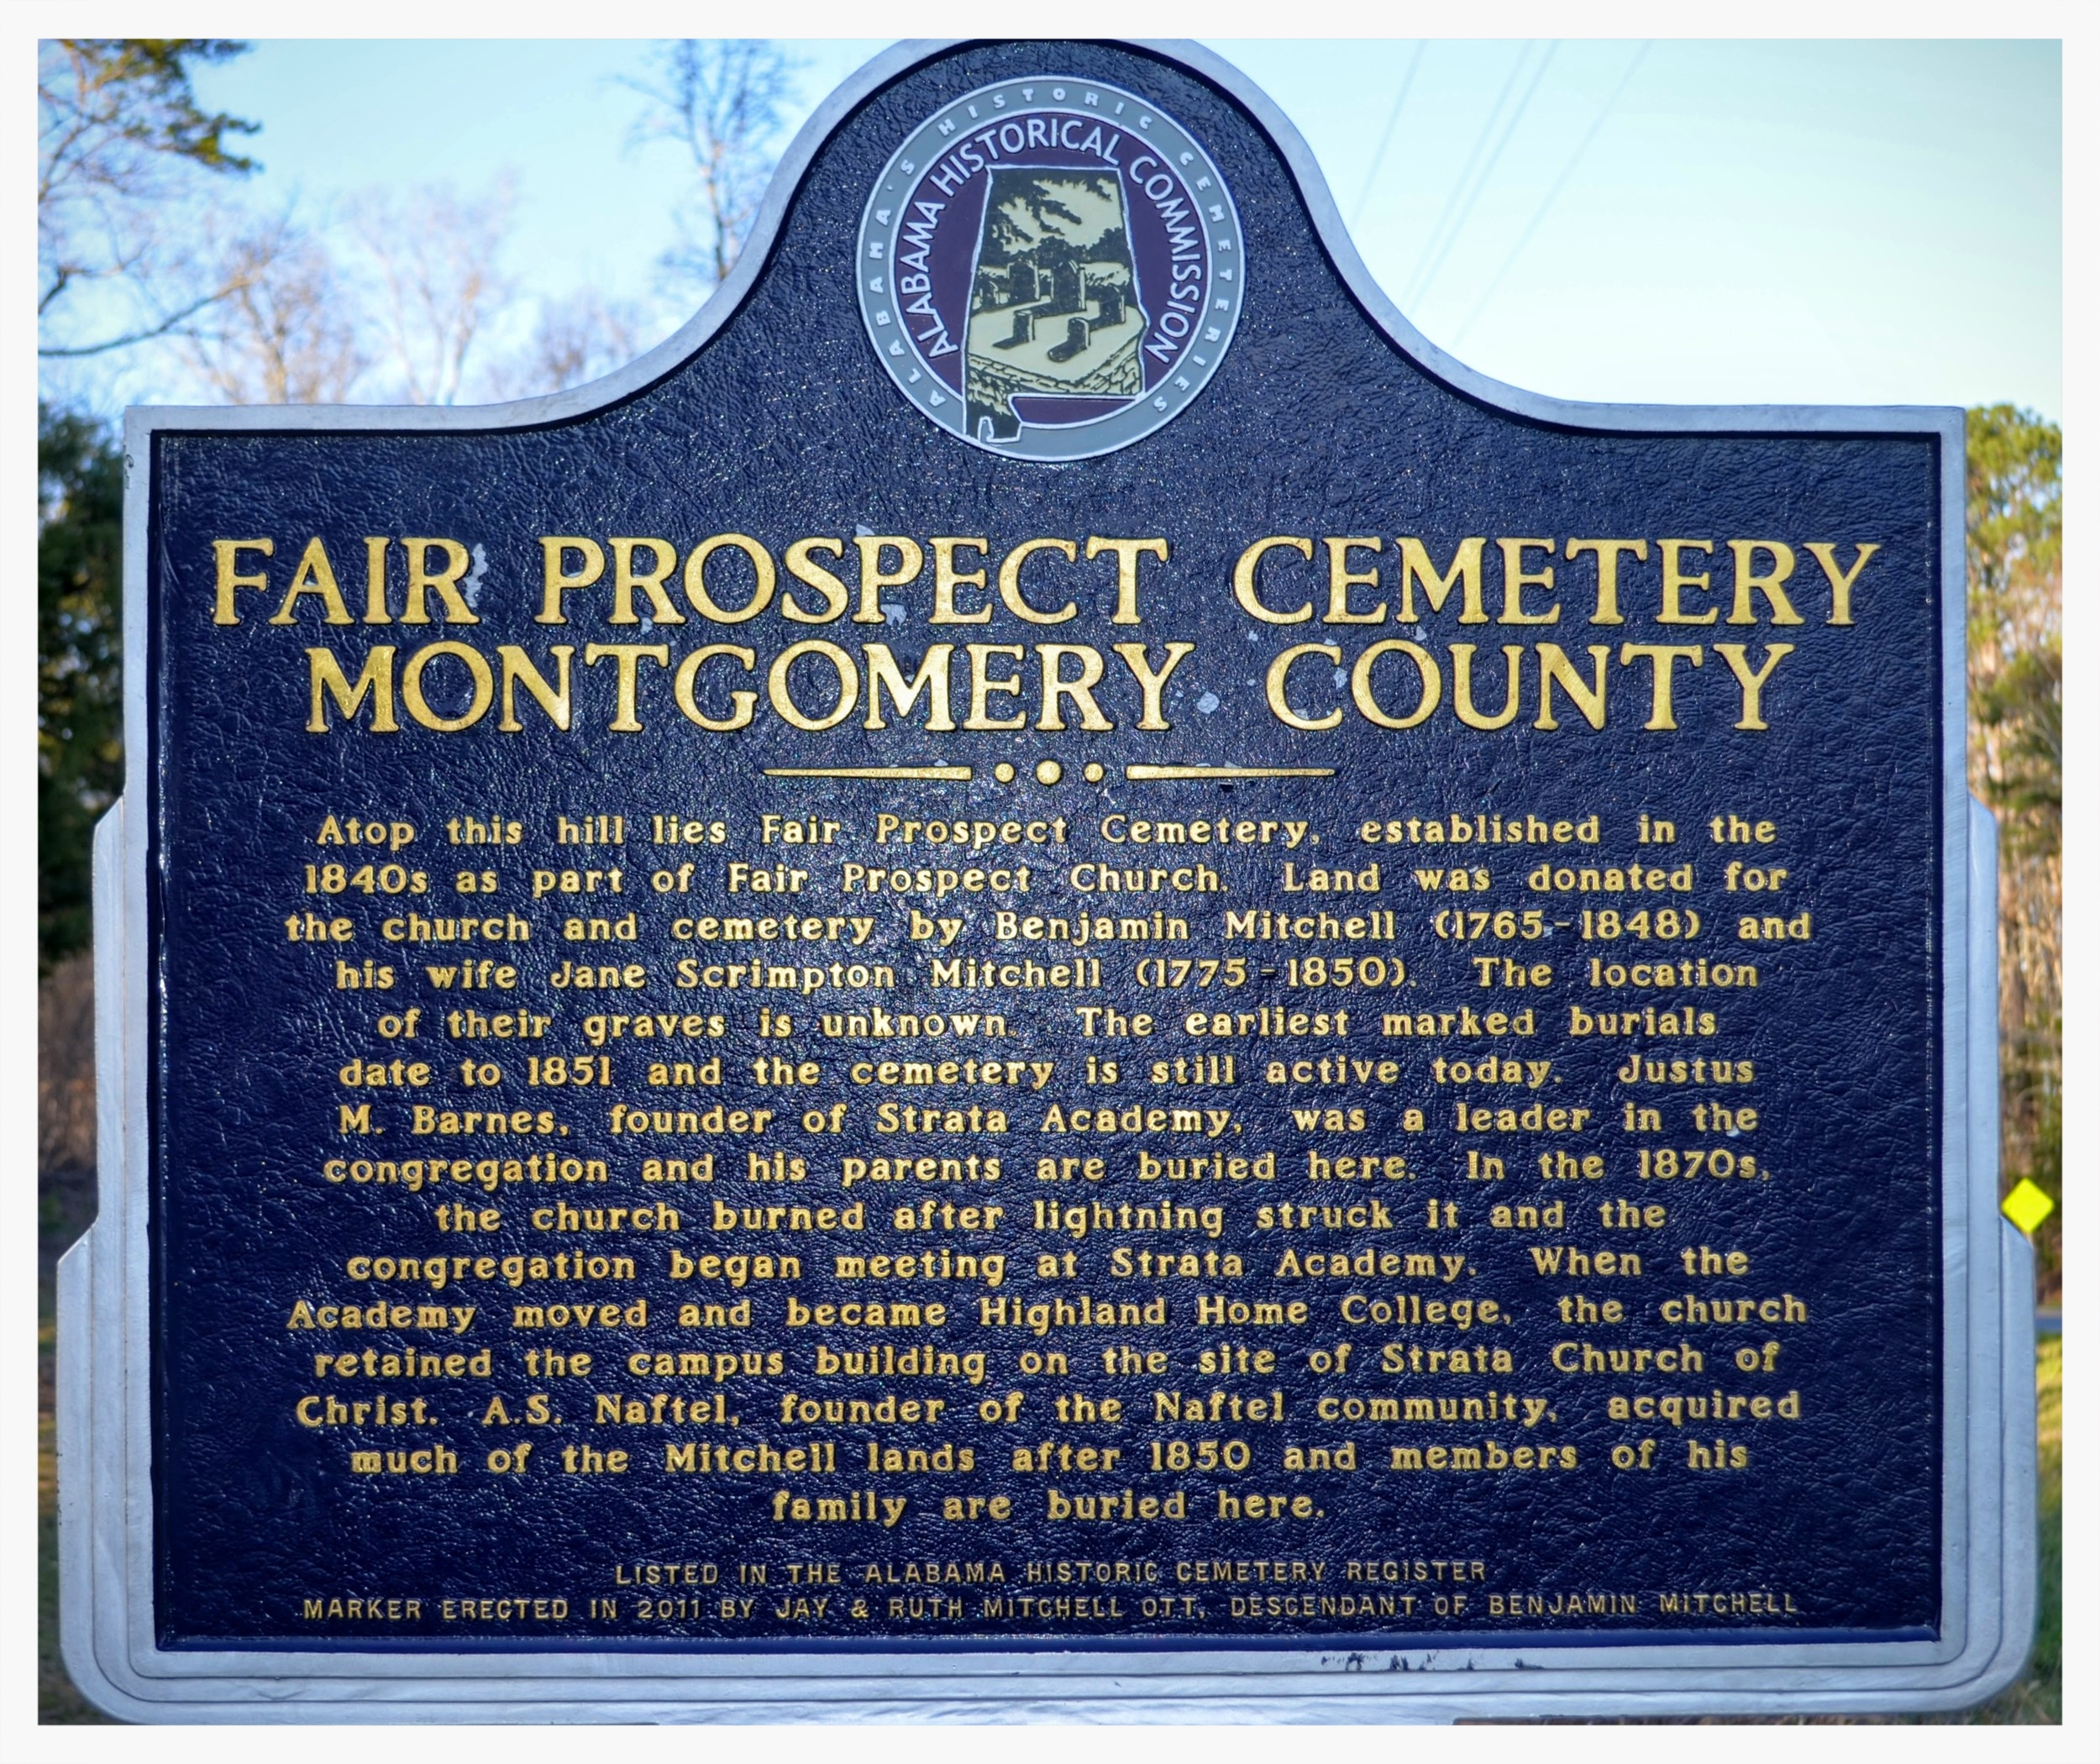 Fair Prospect Cemetery historical marker, Montgomery County, Alabama